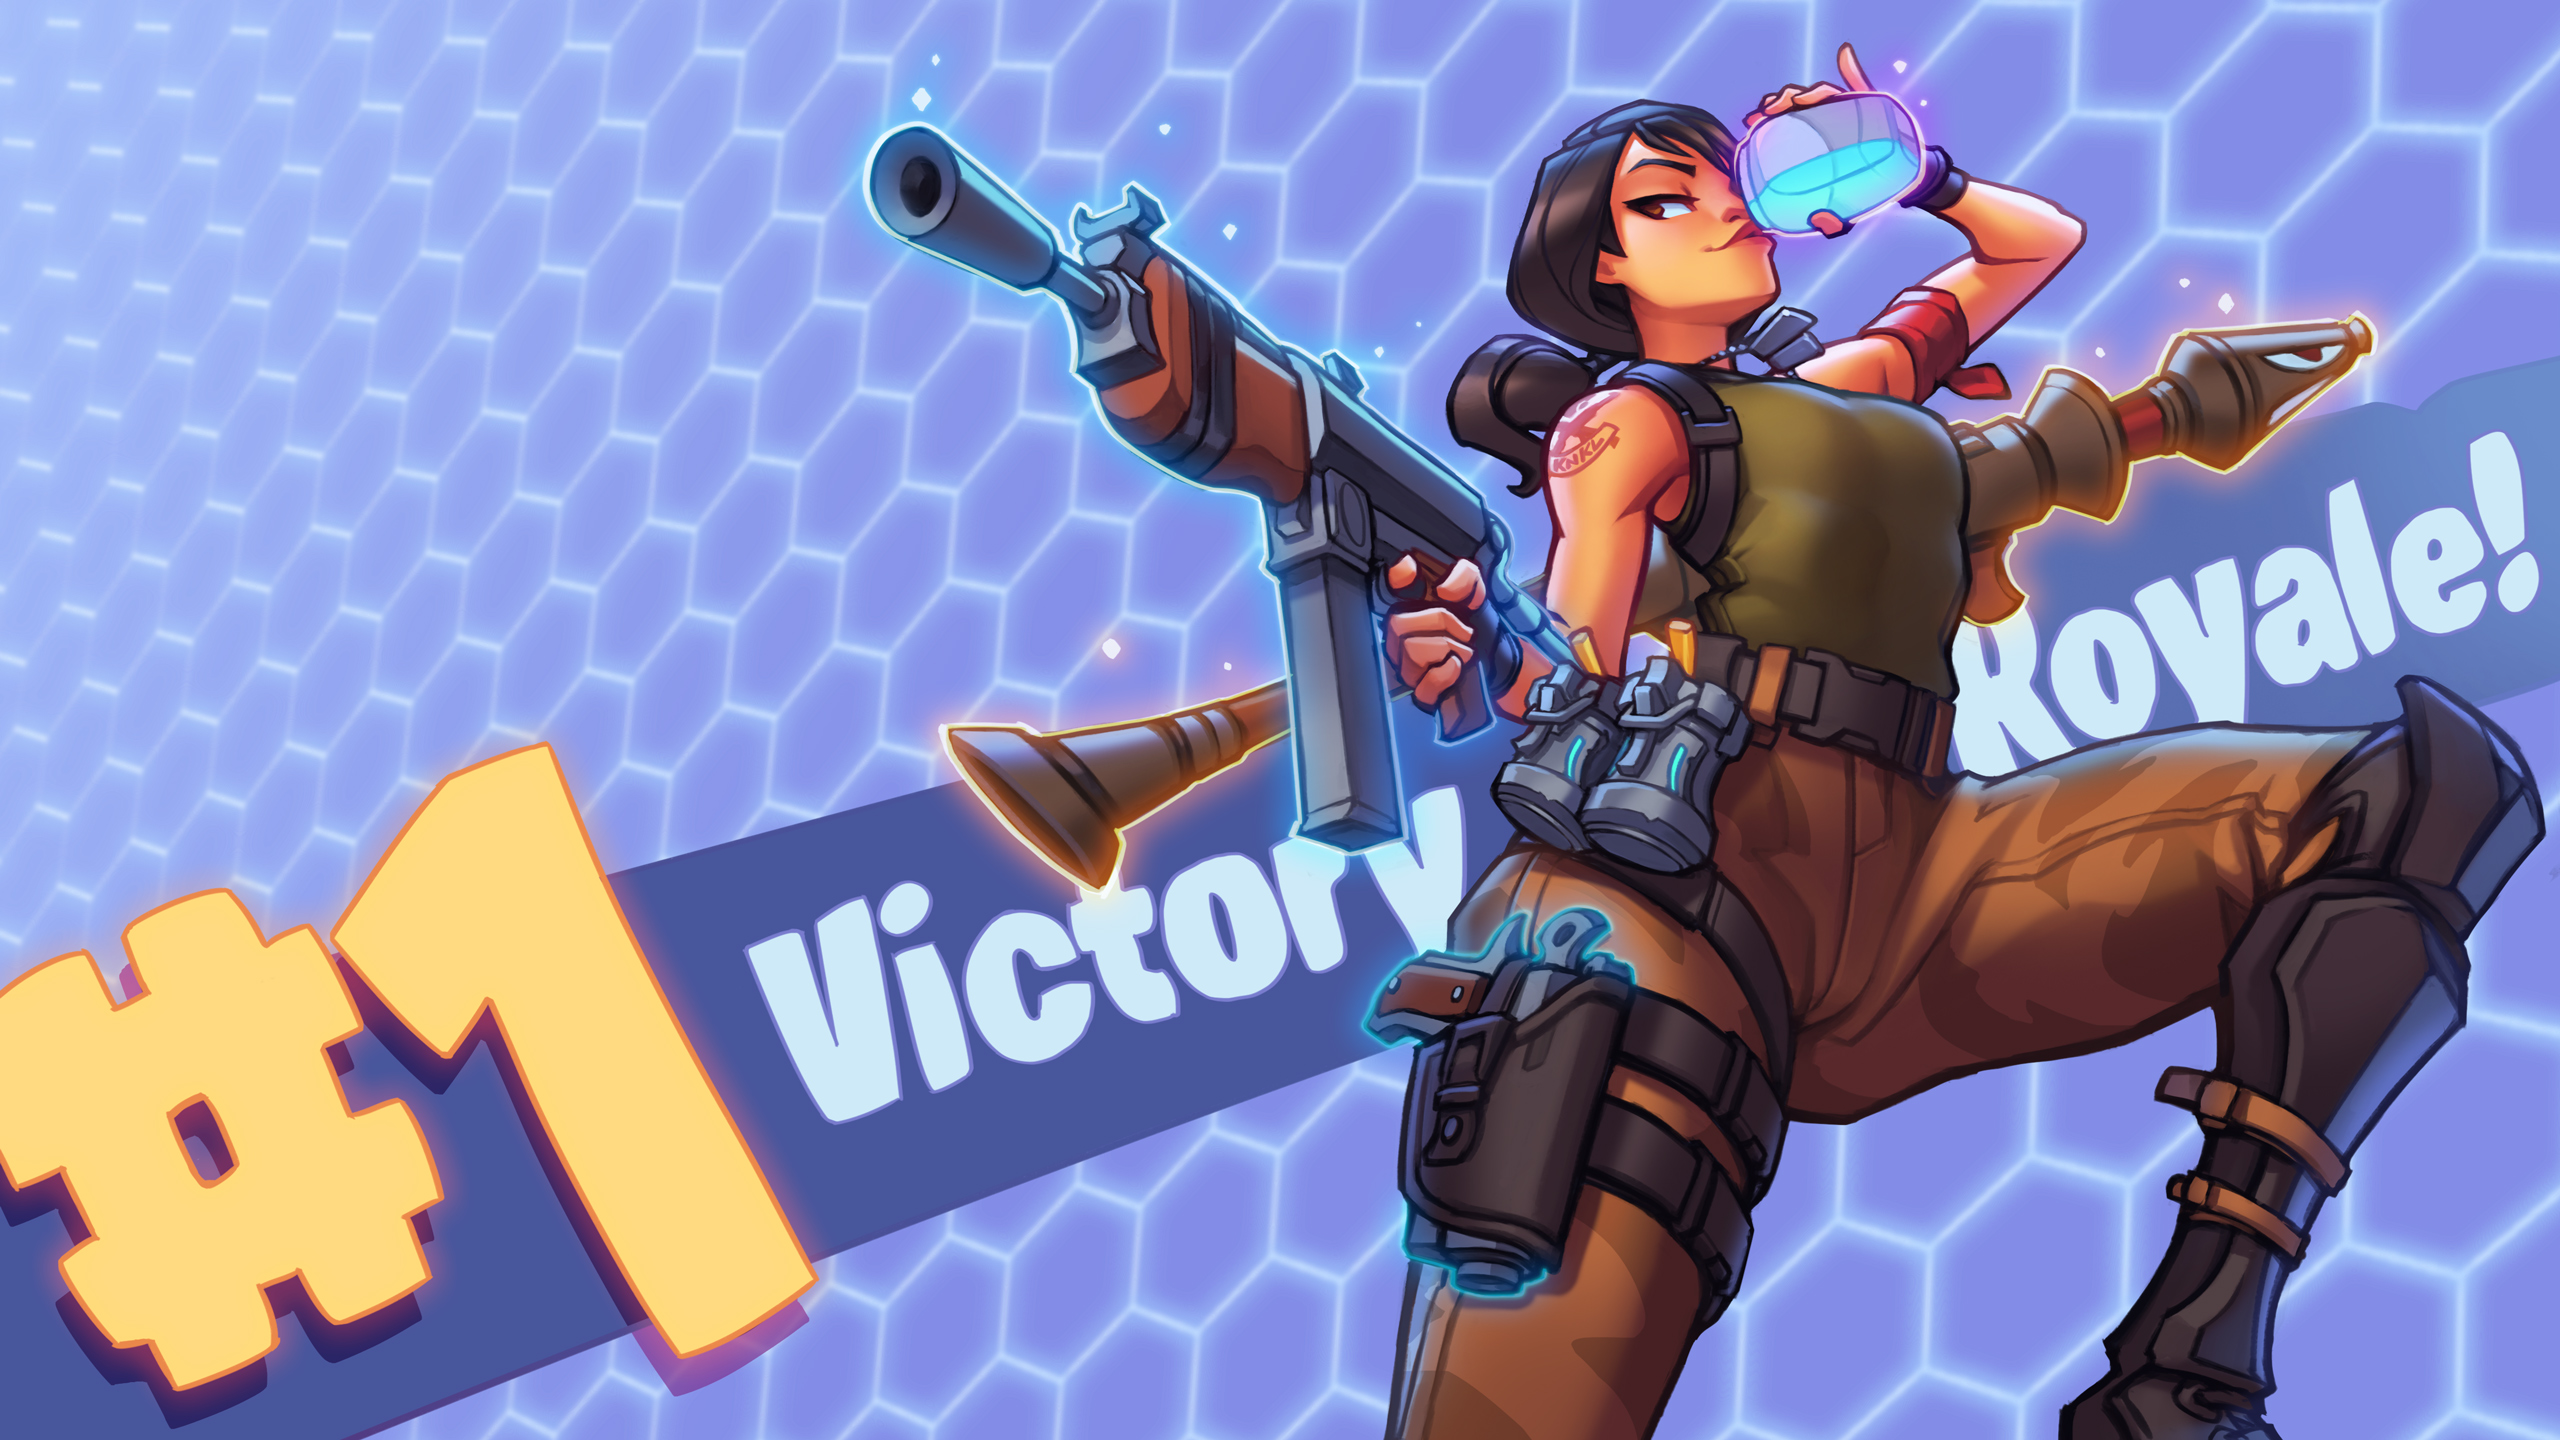 Fortnite - 2018 VICTORY ROYALE! -Youtube!! by KNKL on DeviantArt